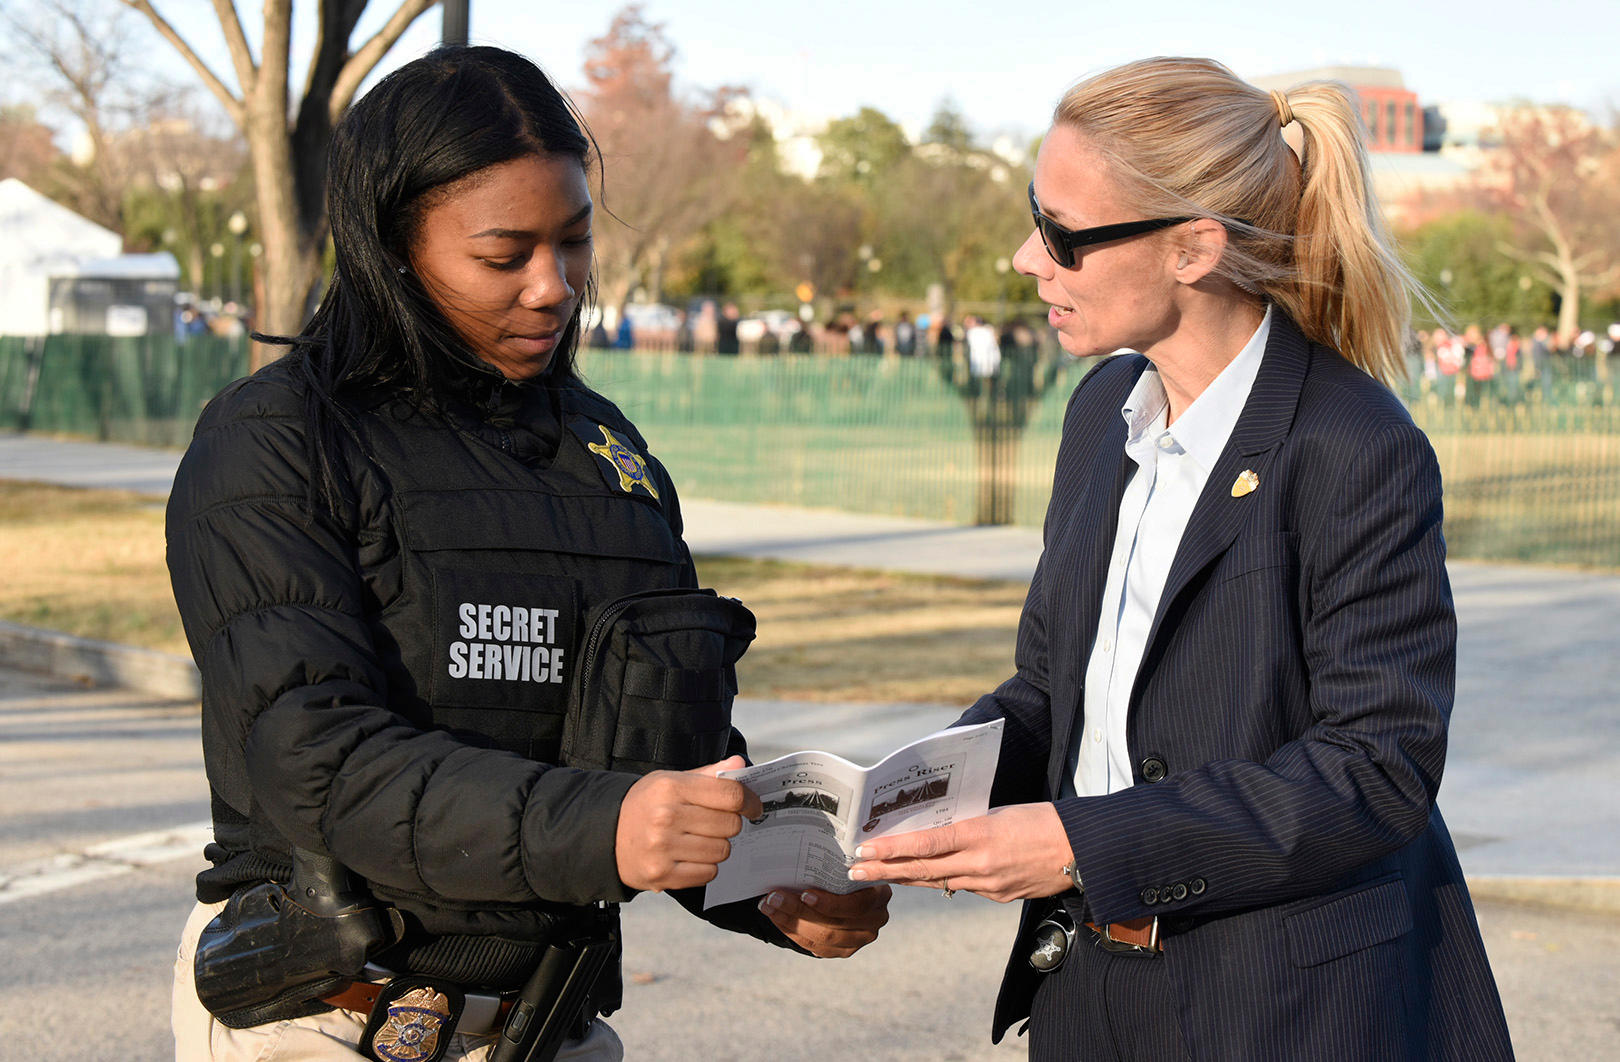 Secret Service Agent Career